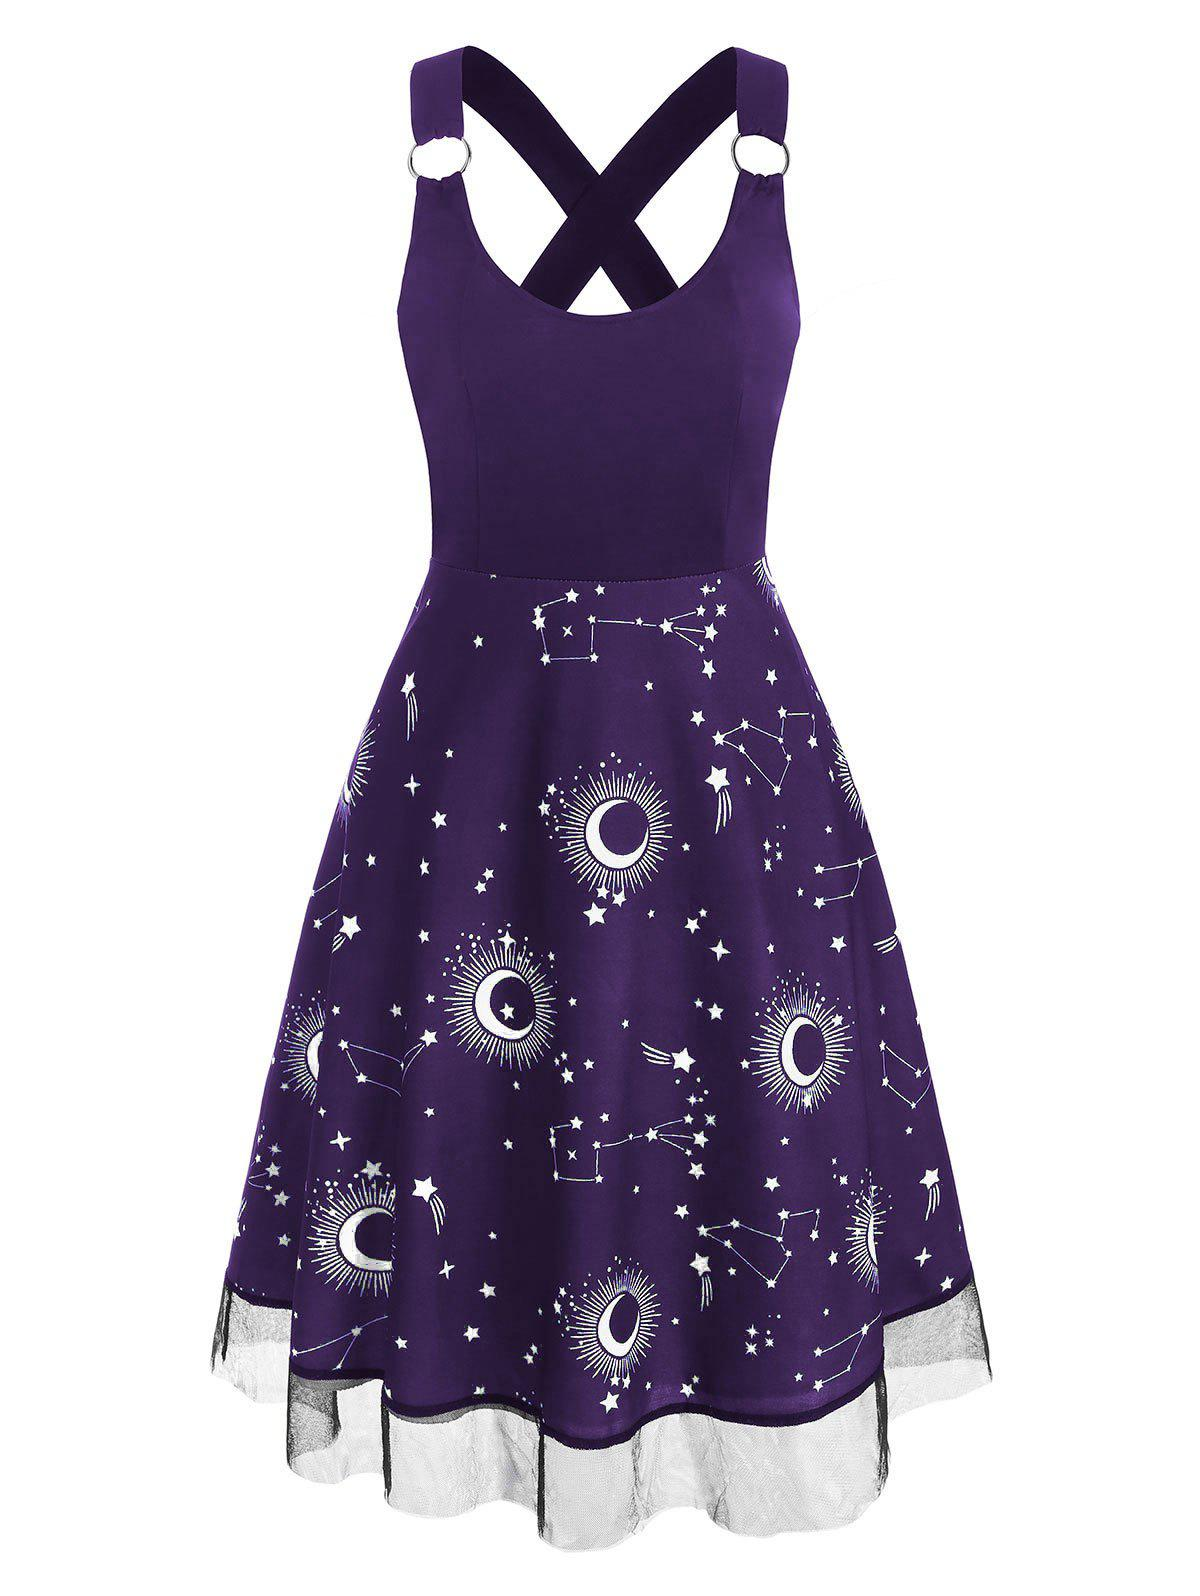 Sun Moon Star Print Lace Insert Criss Cross Dress - PURPLE 2XL